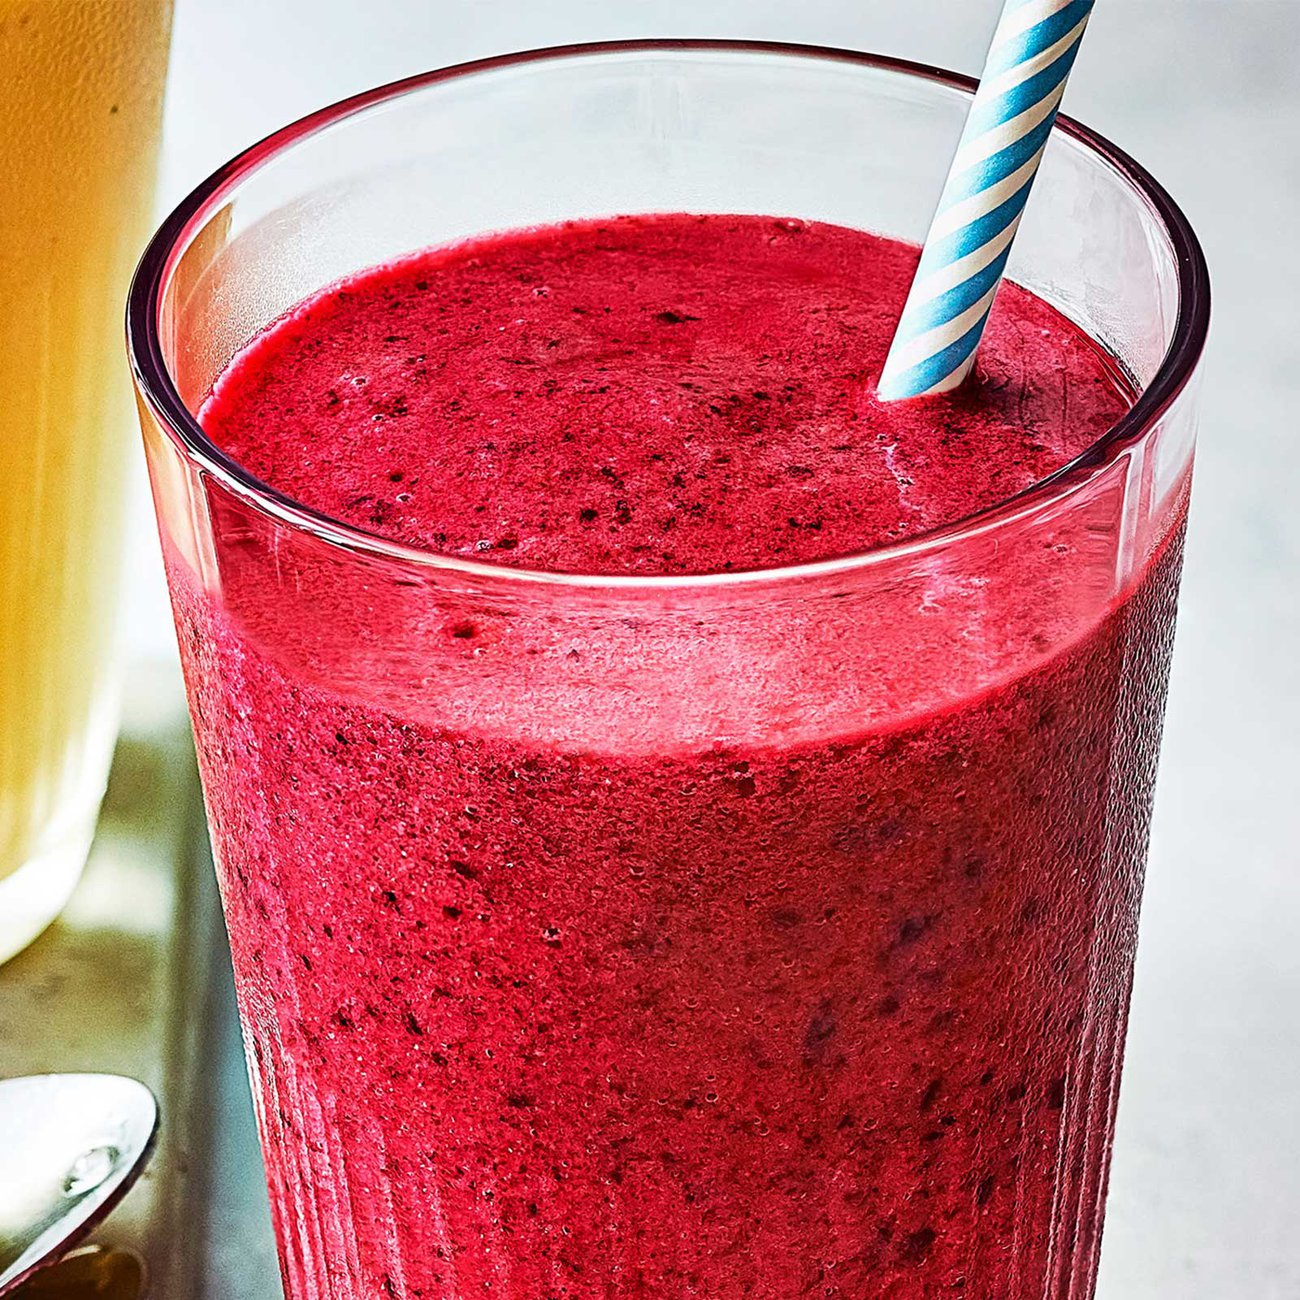 Make a smoothie with kefir to boost your probiotic intake